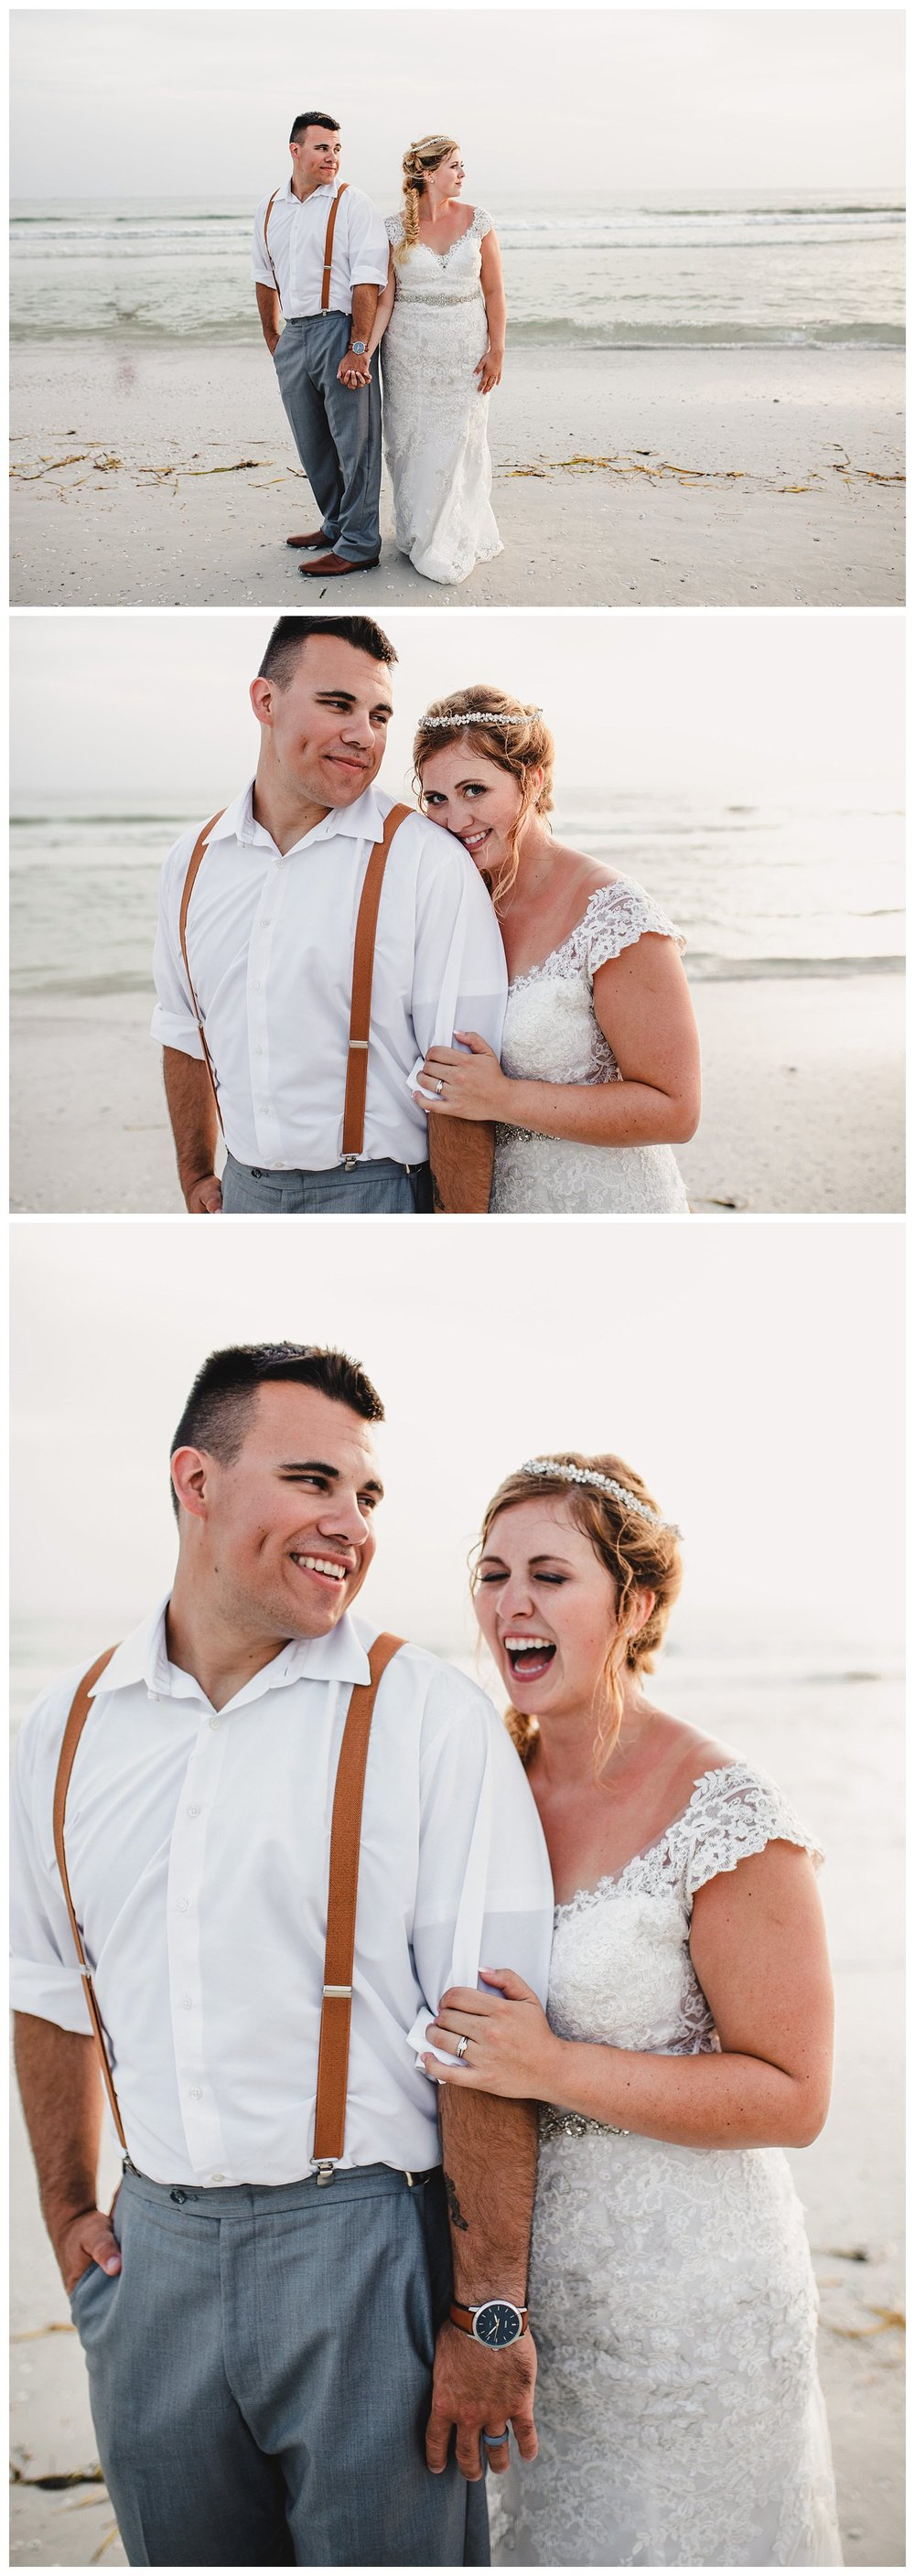 Kelsey_Diane_Photography_Destination_Wedding_Sarasota_Florida_Beach_Wedding_Alex_Austin_0681.jpg